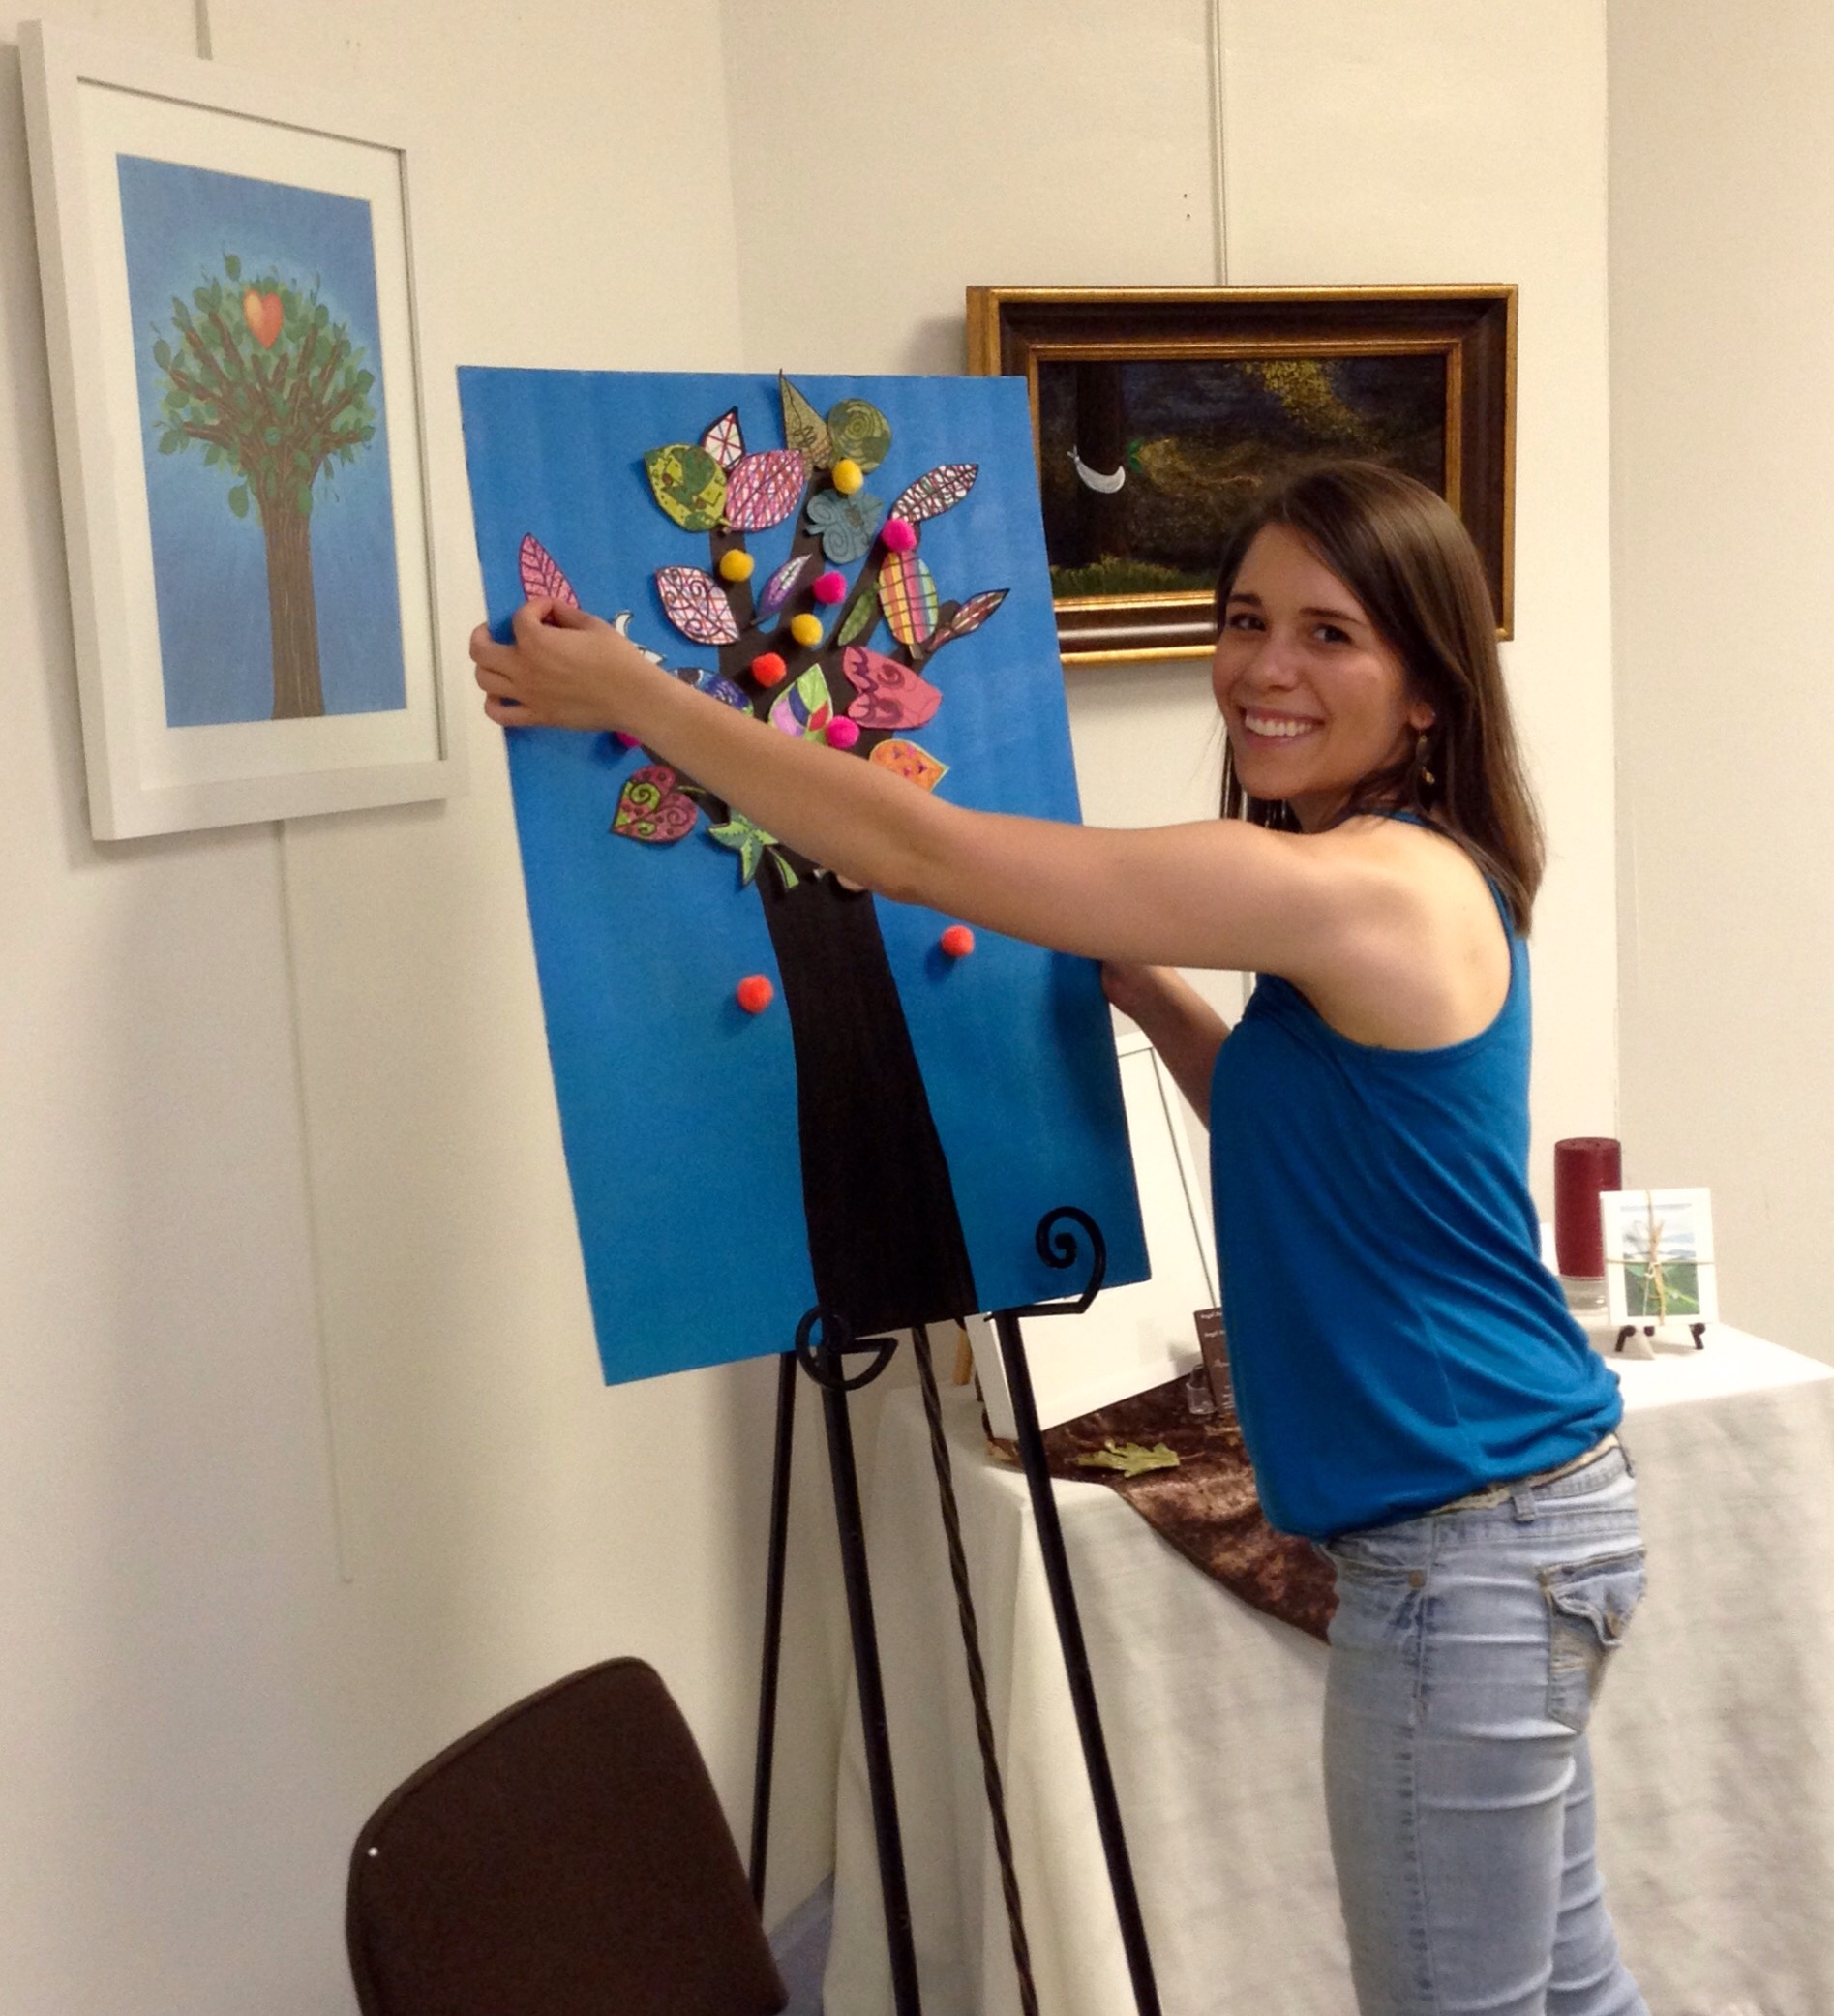 Amy Thieme was my awesome studio assistant for the project.